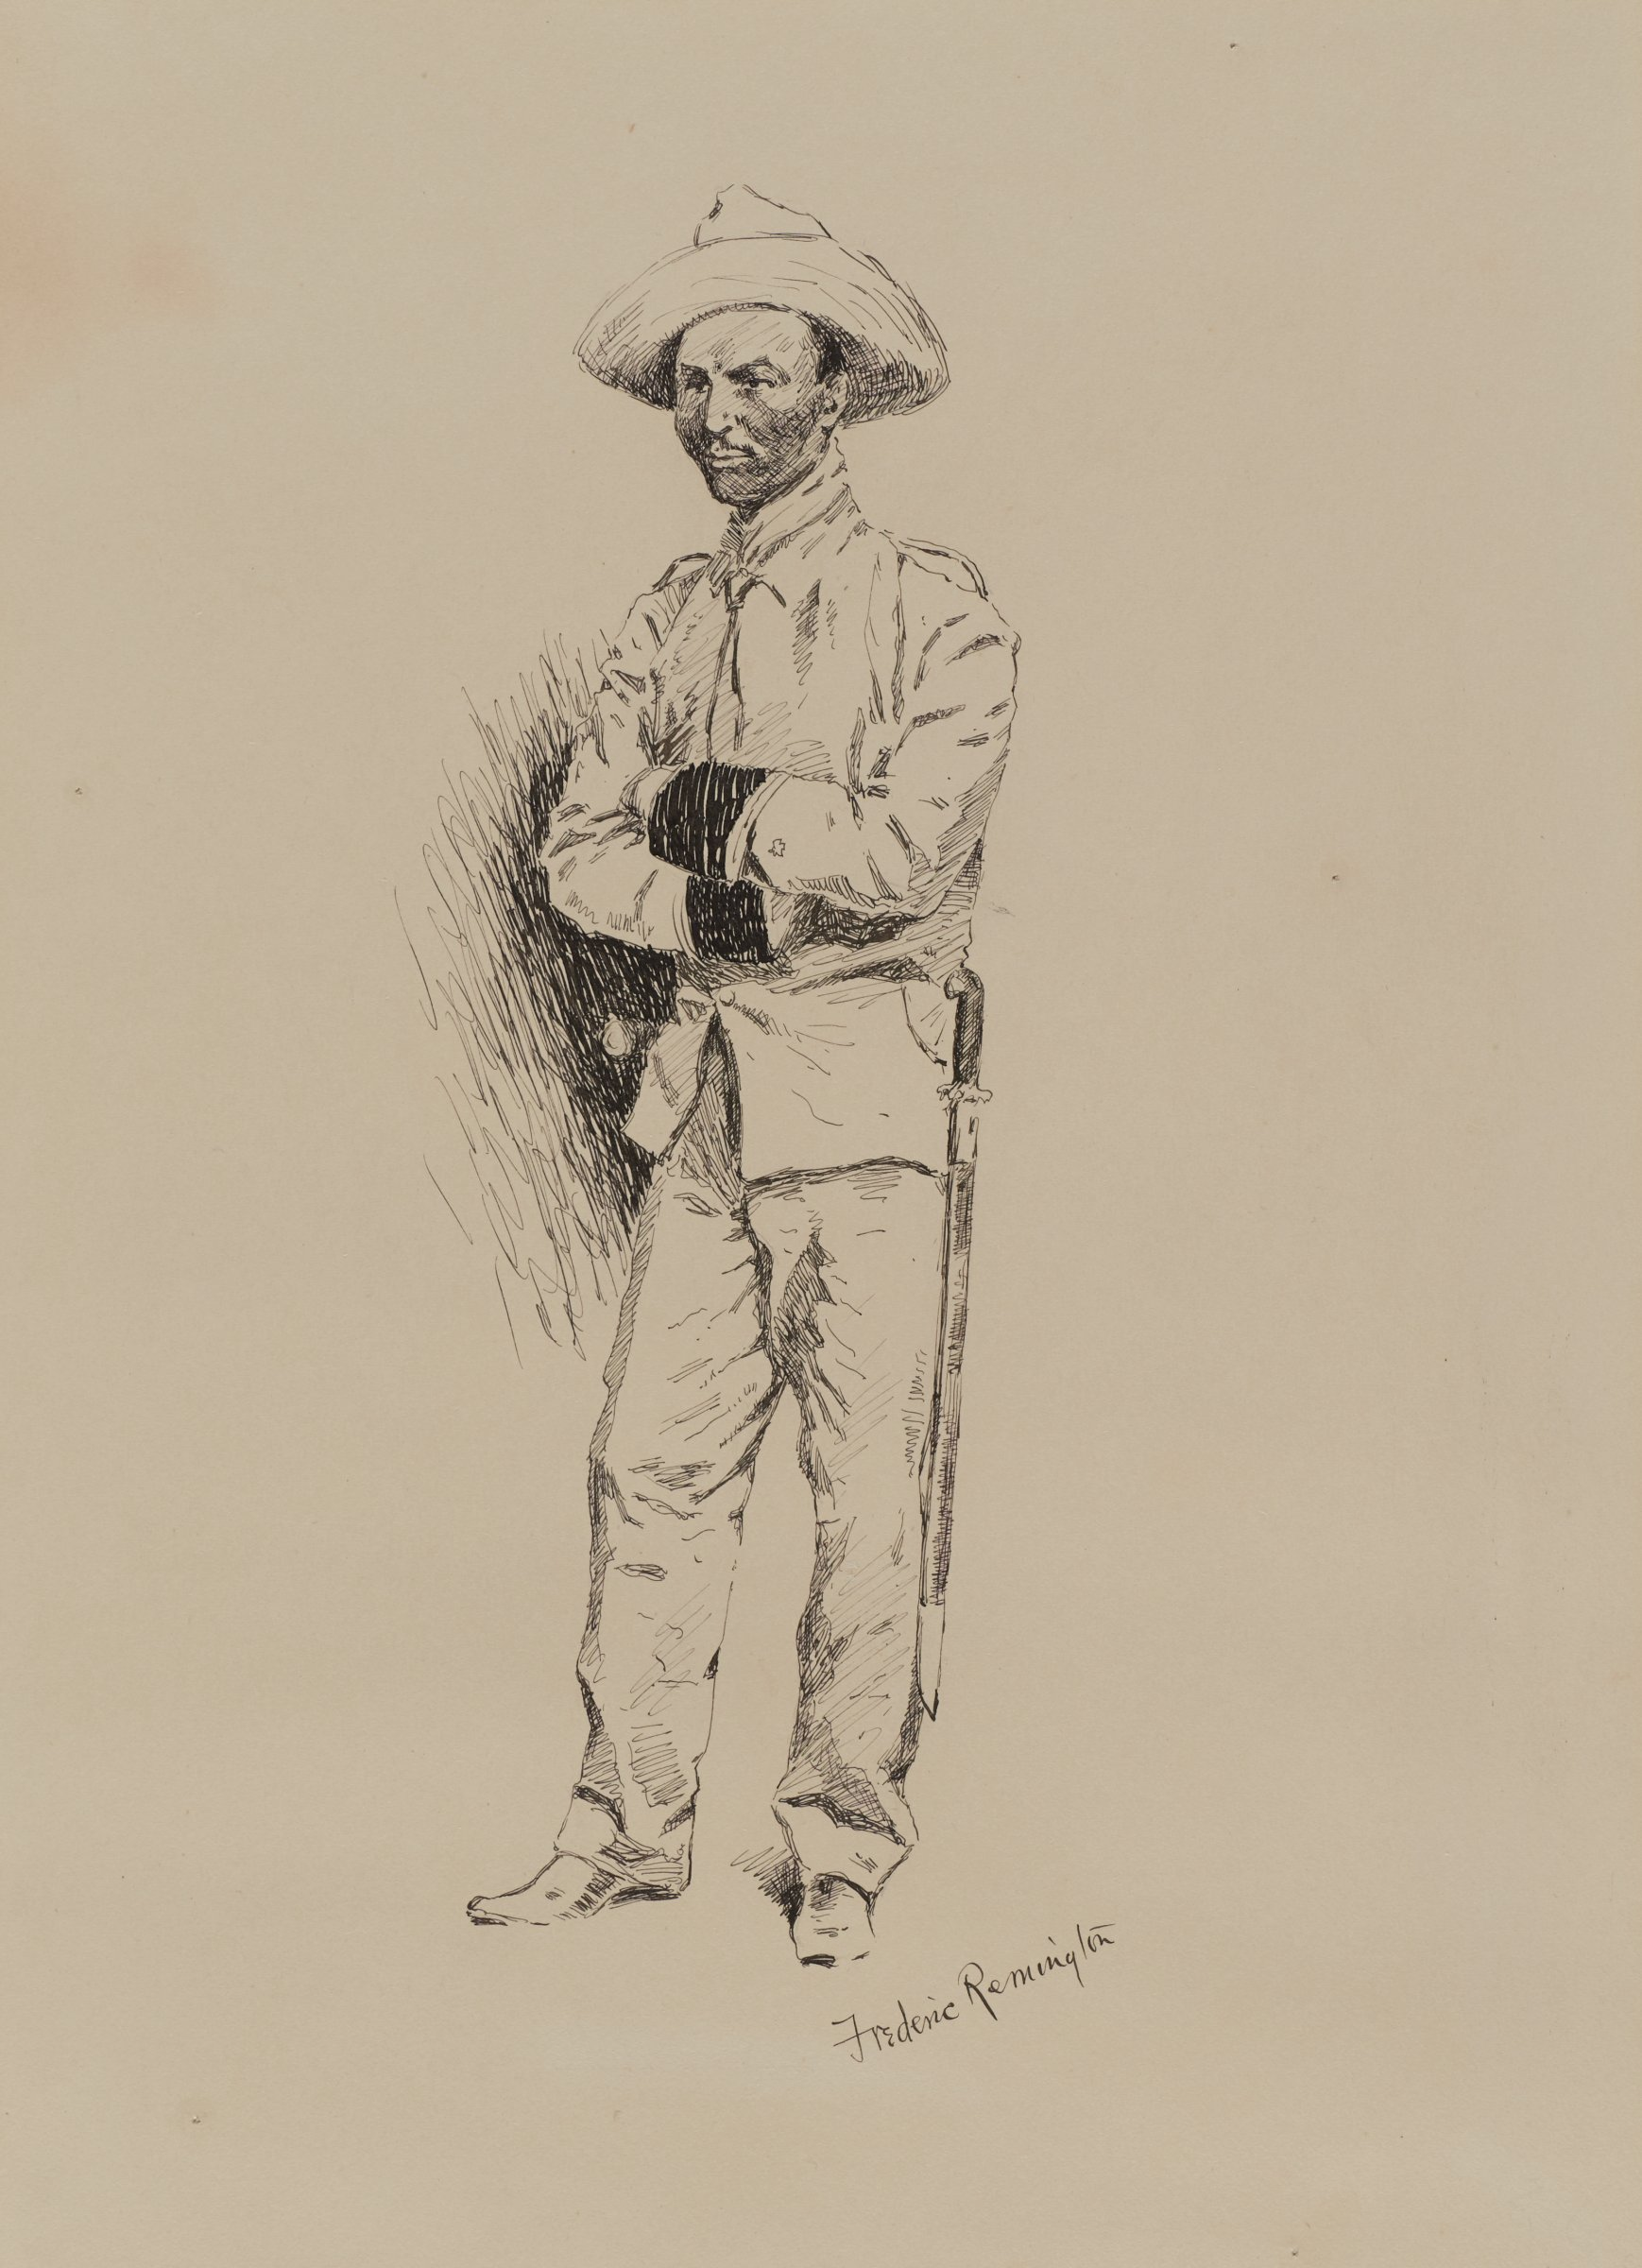 Young Spanish Officer, Frederic Remington, ink on paper